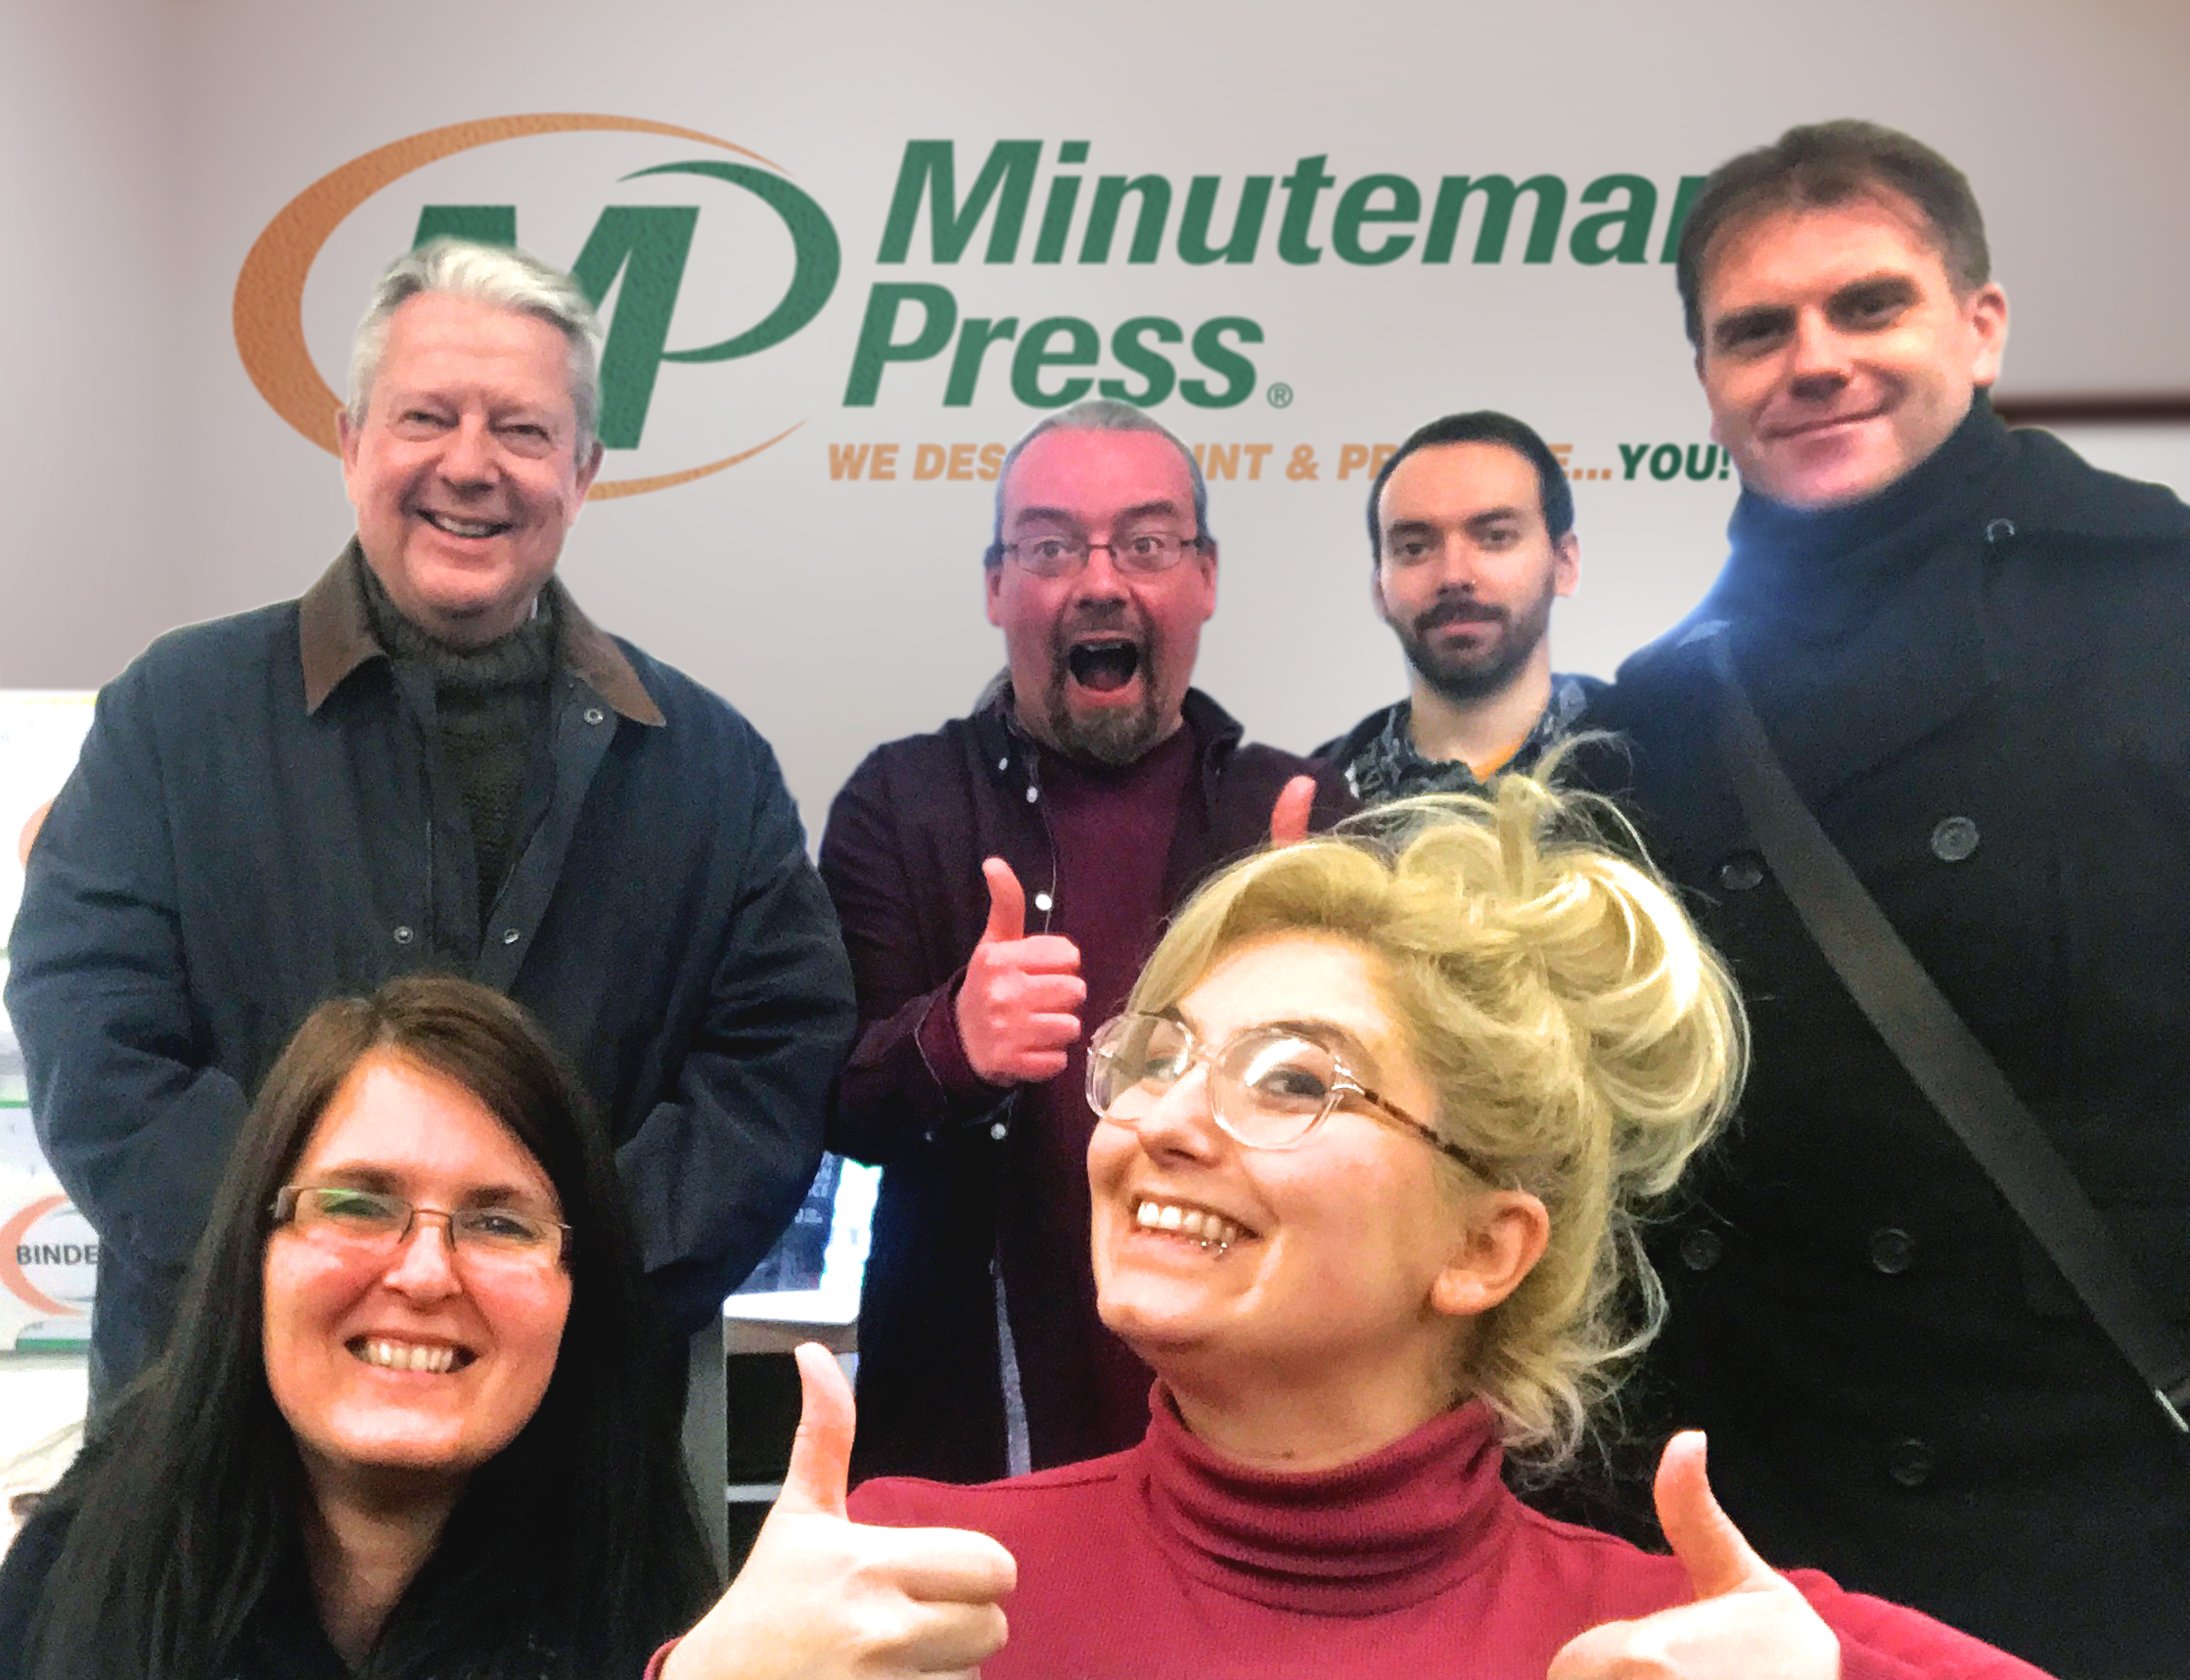 Meet the Minuteman Press franchise team, Norwich, England - L-R: Anne, Philip, Sean, Morwenna, Danny, and Daniel.